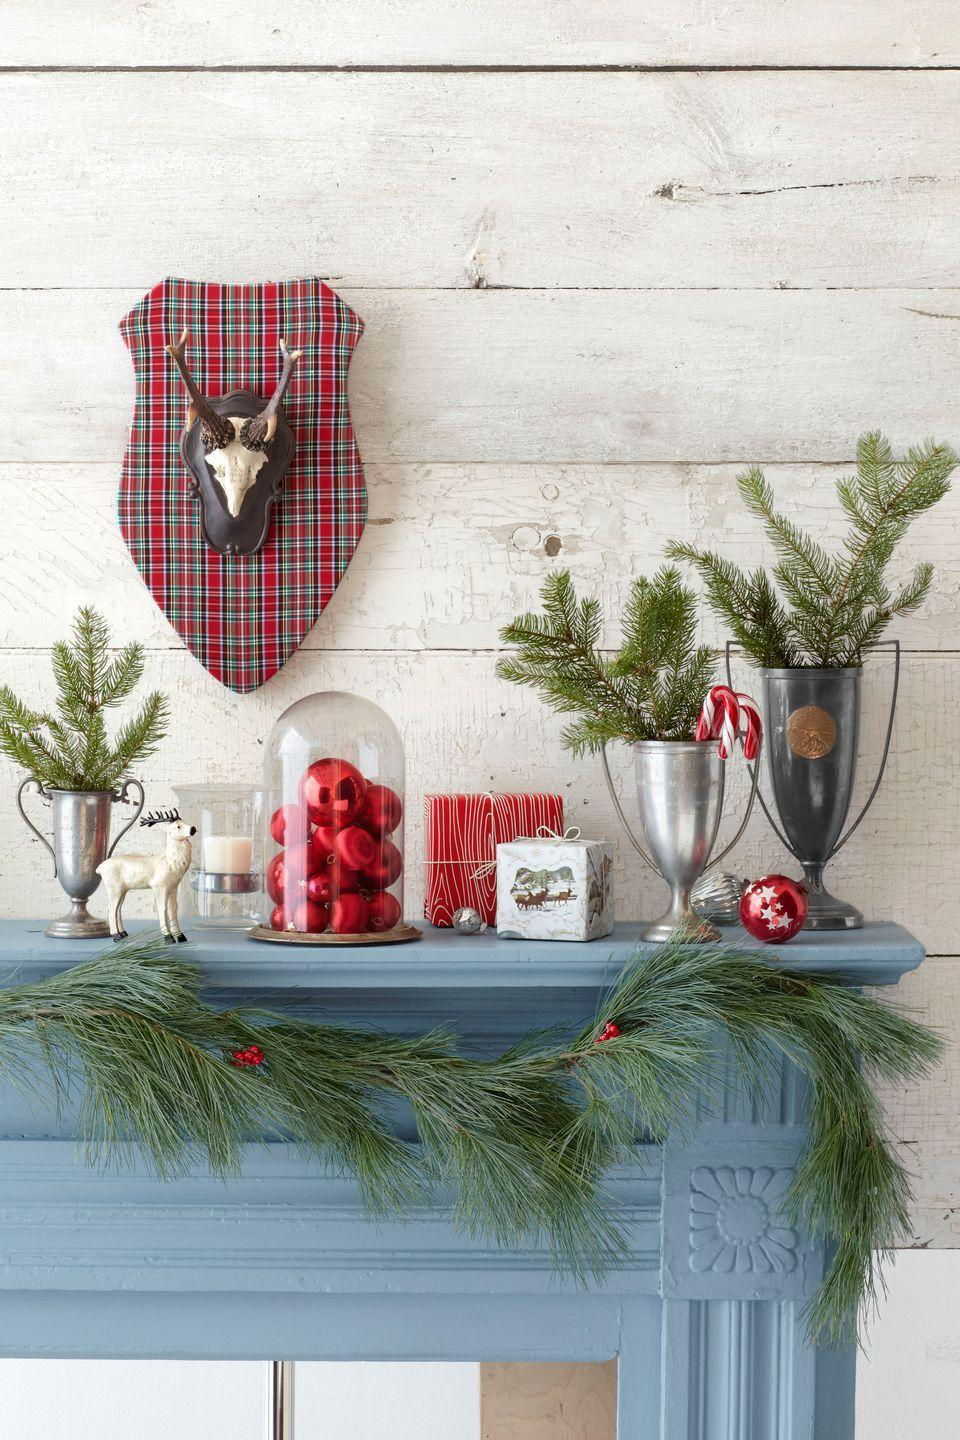 """<p>Give your mantel a rustic-preppy look with a <span class=""""redactor-unlink"""">resin reindeer ornament</span> and plaid plaque. Antique trophies make cute vases for pine tree boughs.</p><p><a class=""""link rapid-noclick-resp"""" href=""""https://go.redirectingat.com?id=74968X1596630&url=https%3A%2F%2Fwww.etsy.com%2Fmarket%2Fdeer_ornament&sref=https%3A%2F%2Fwww.countryliving.com%2Fhome-design%2Fdecorating-ideas%2Fadvice%2Fg1247%2Fholiday-decorating-1208%2F"""" rel=""""nofollow noopener"""" target=""""_blank"""" data-ylk=""""slk:SHOP DEER ORNAMENTS"""">SHOP DEER ORNAMENTS</a> </p>"""